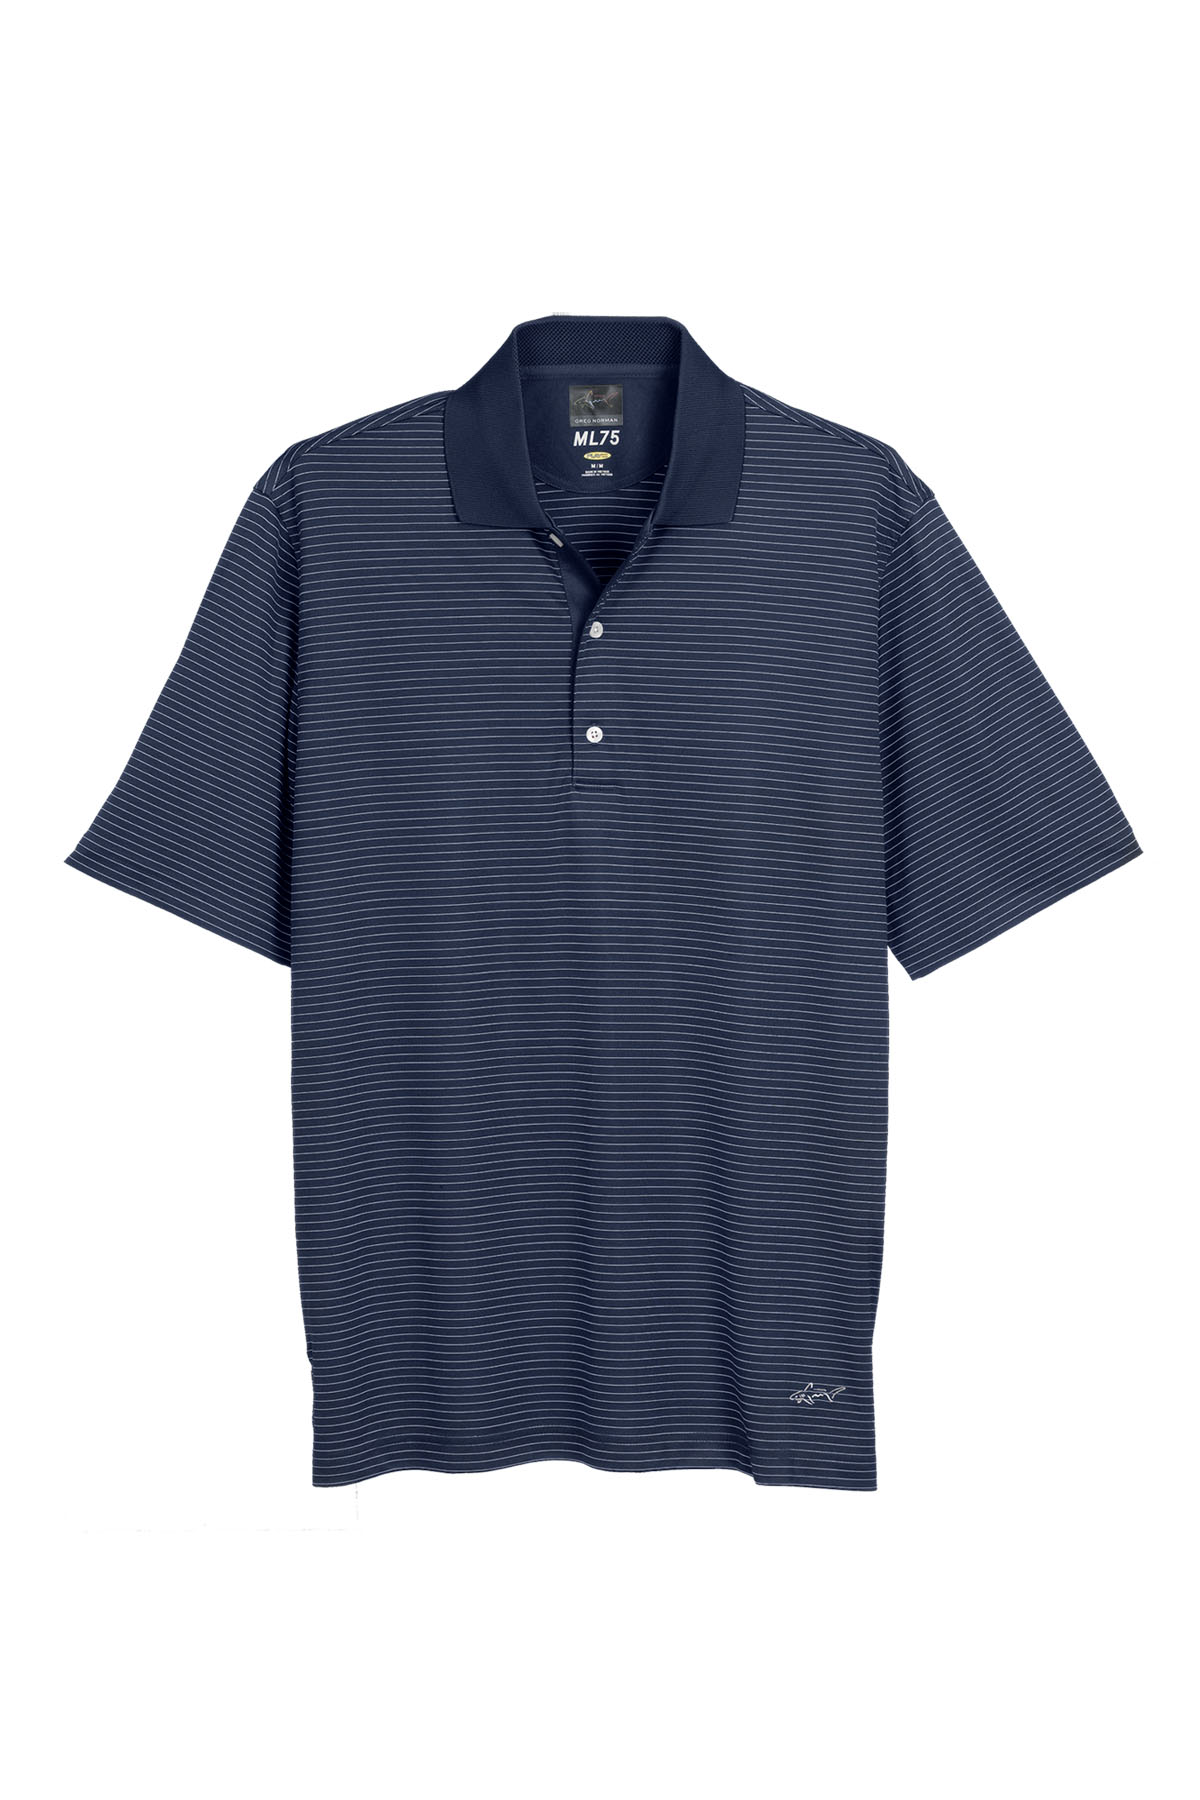 Greg norman gns3k424 play dry ml75 fine line stripe for Greg norman ml75 shirts